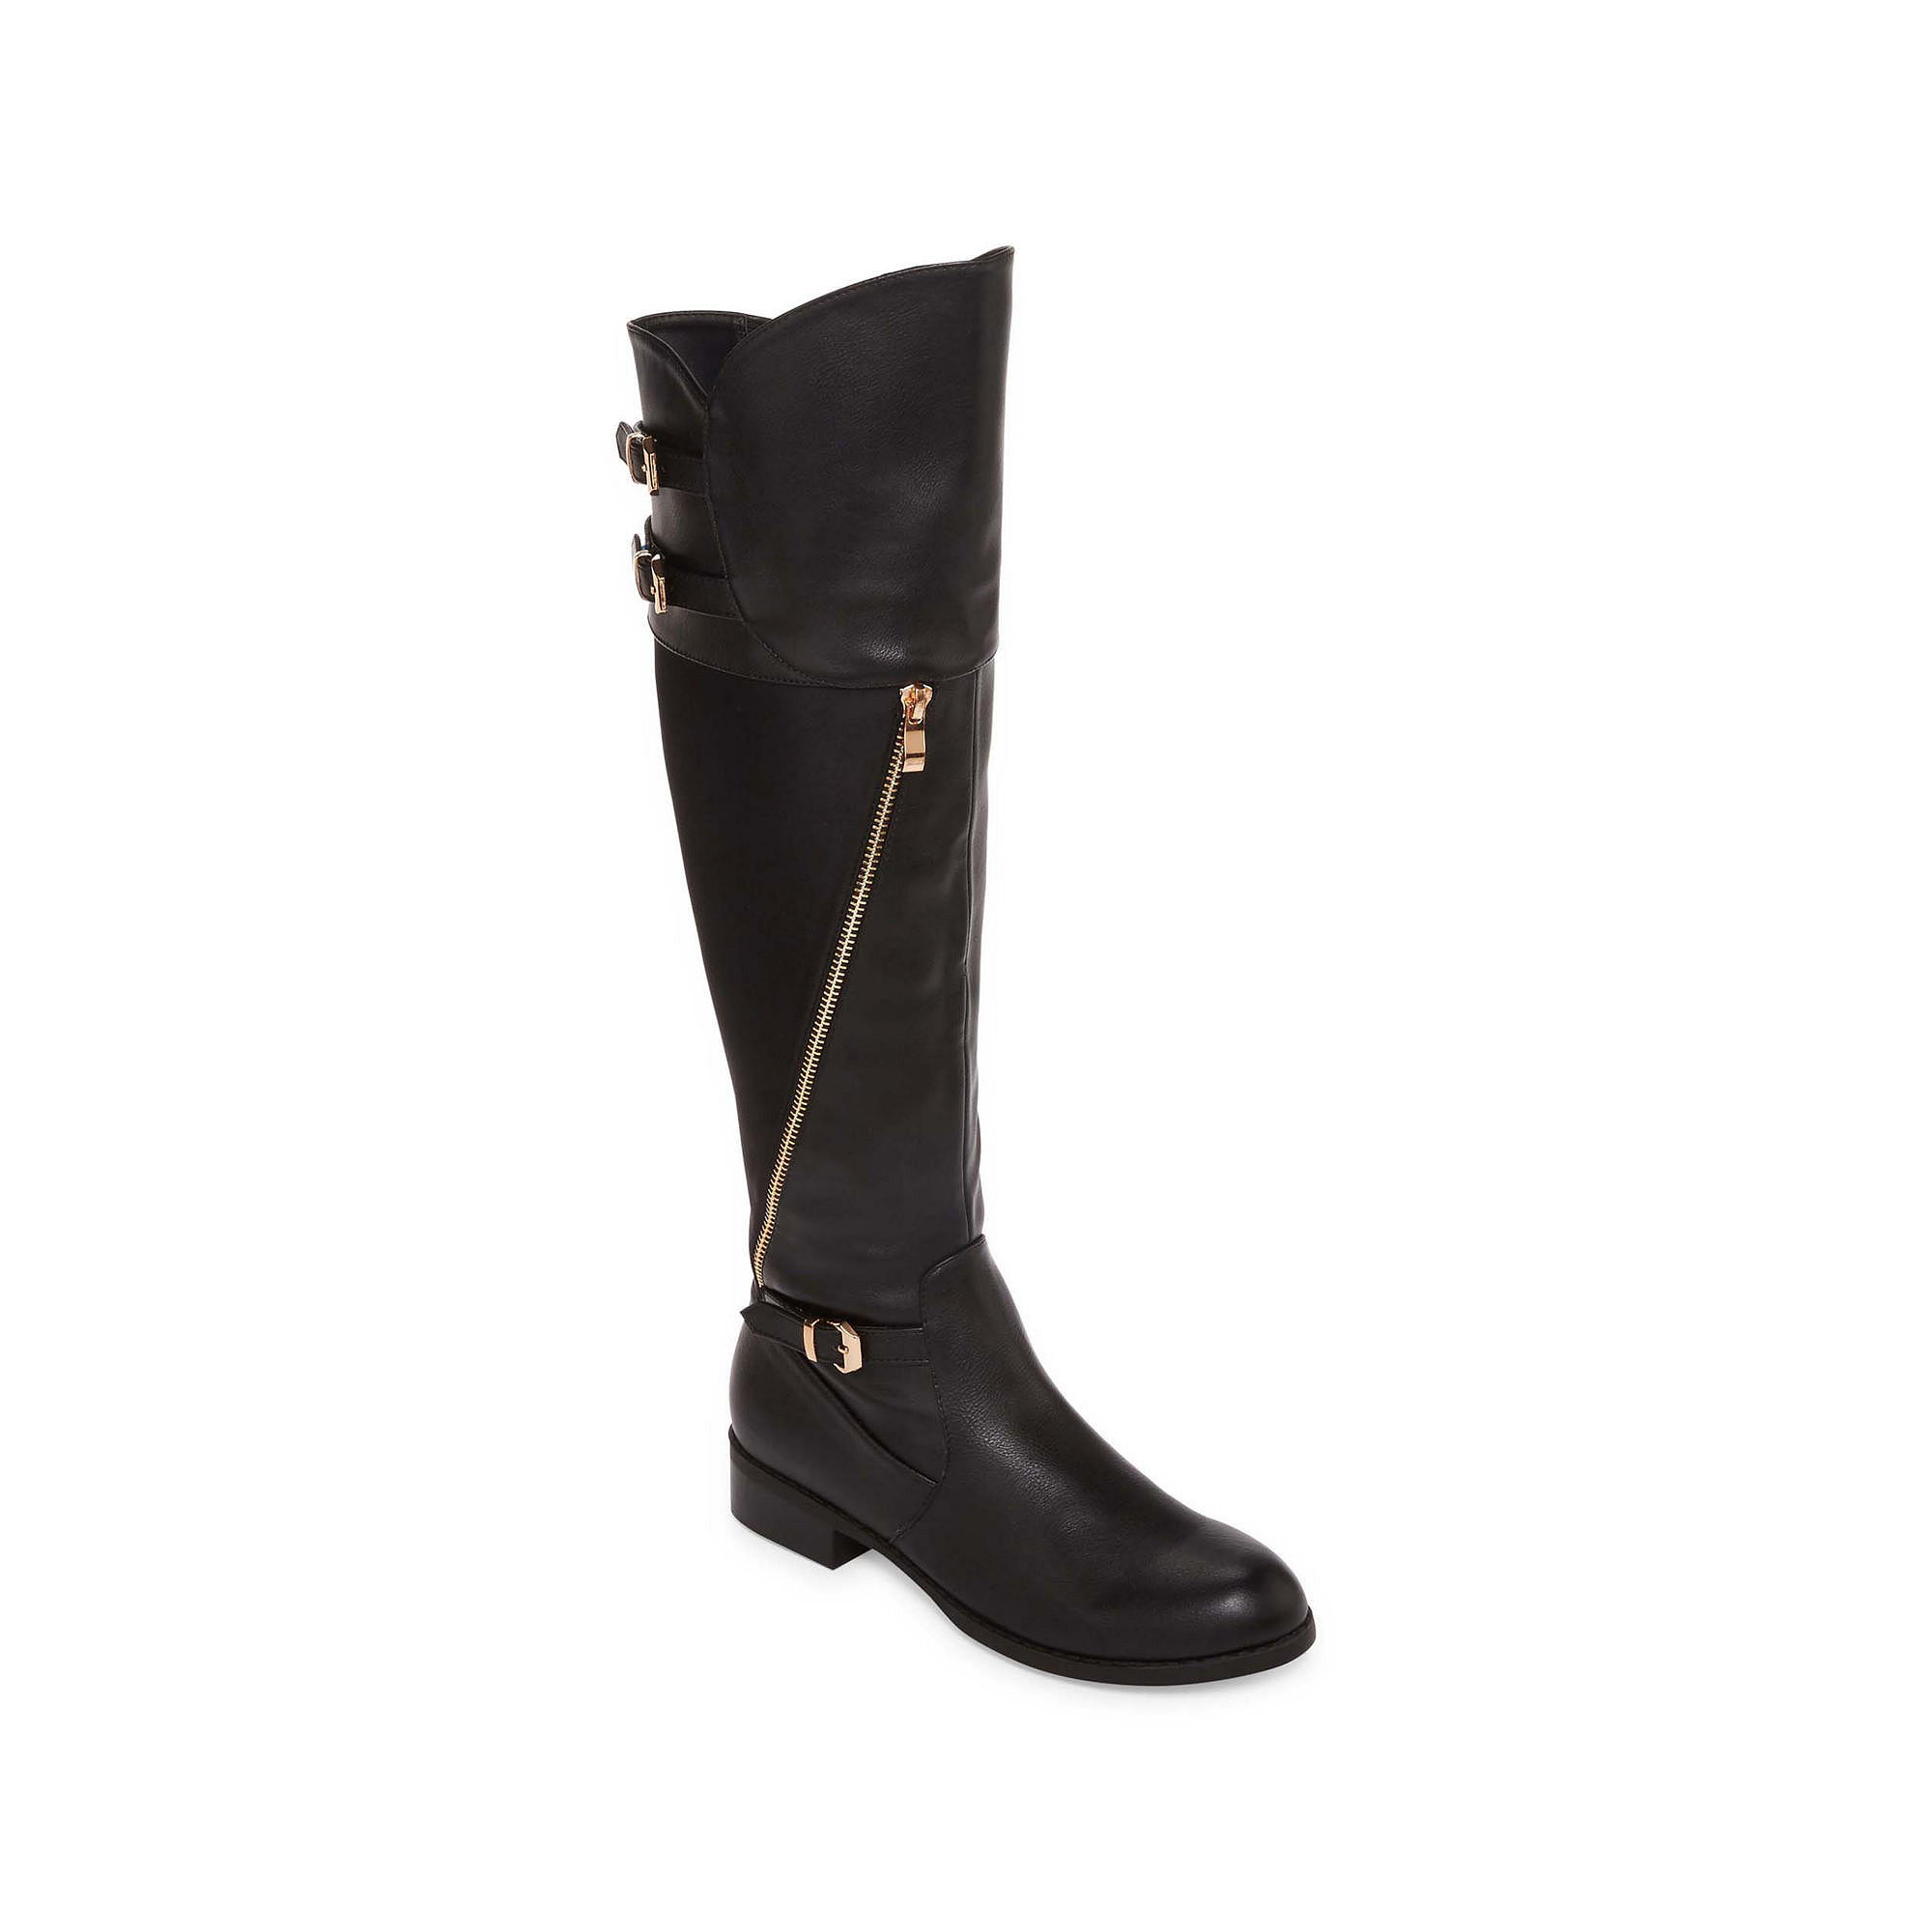 CHEAP GC Shoes Kourtney Riding Boots NOW